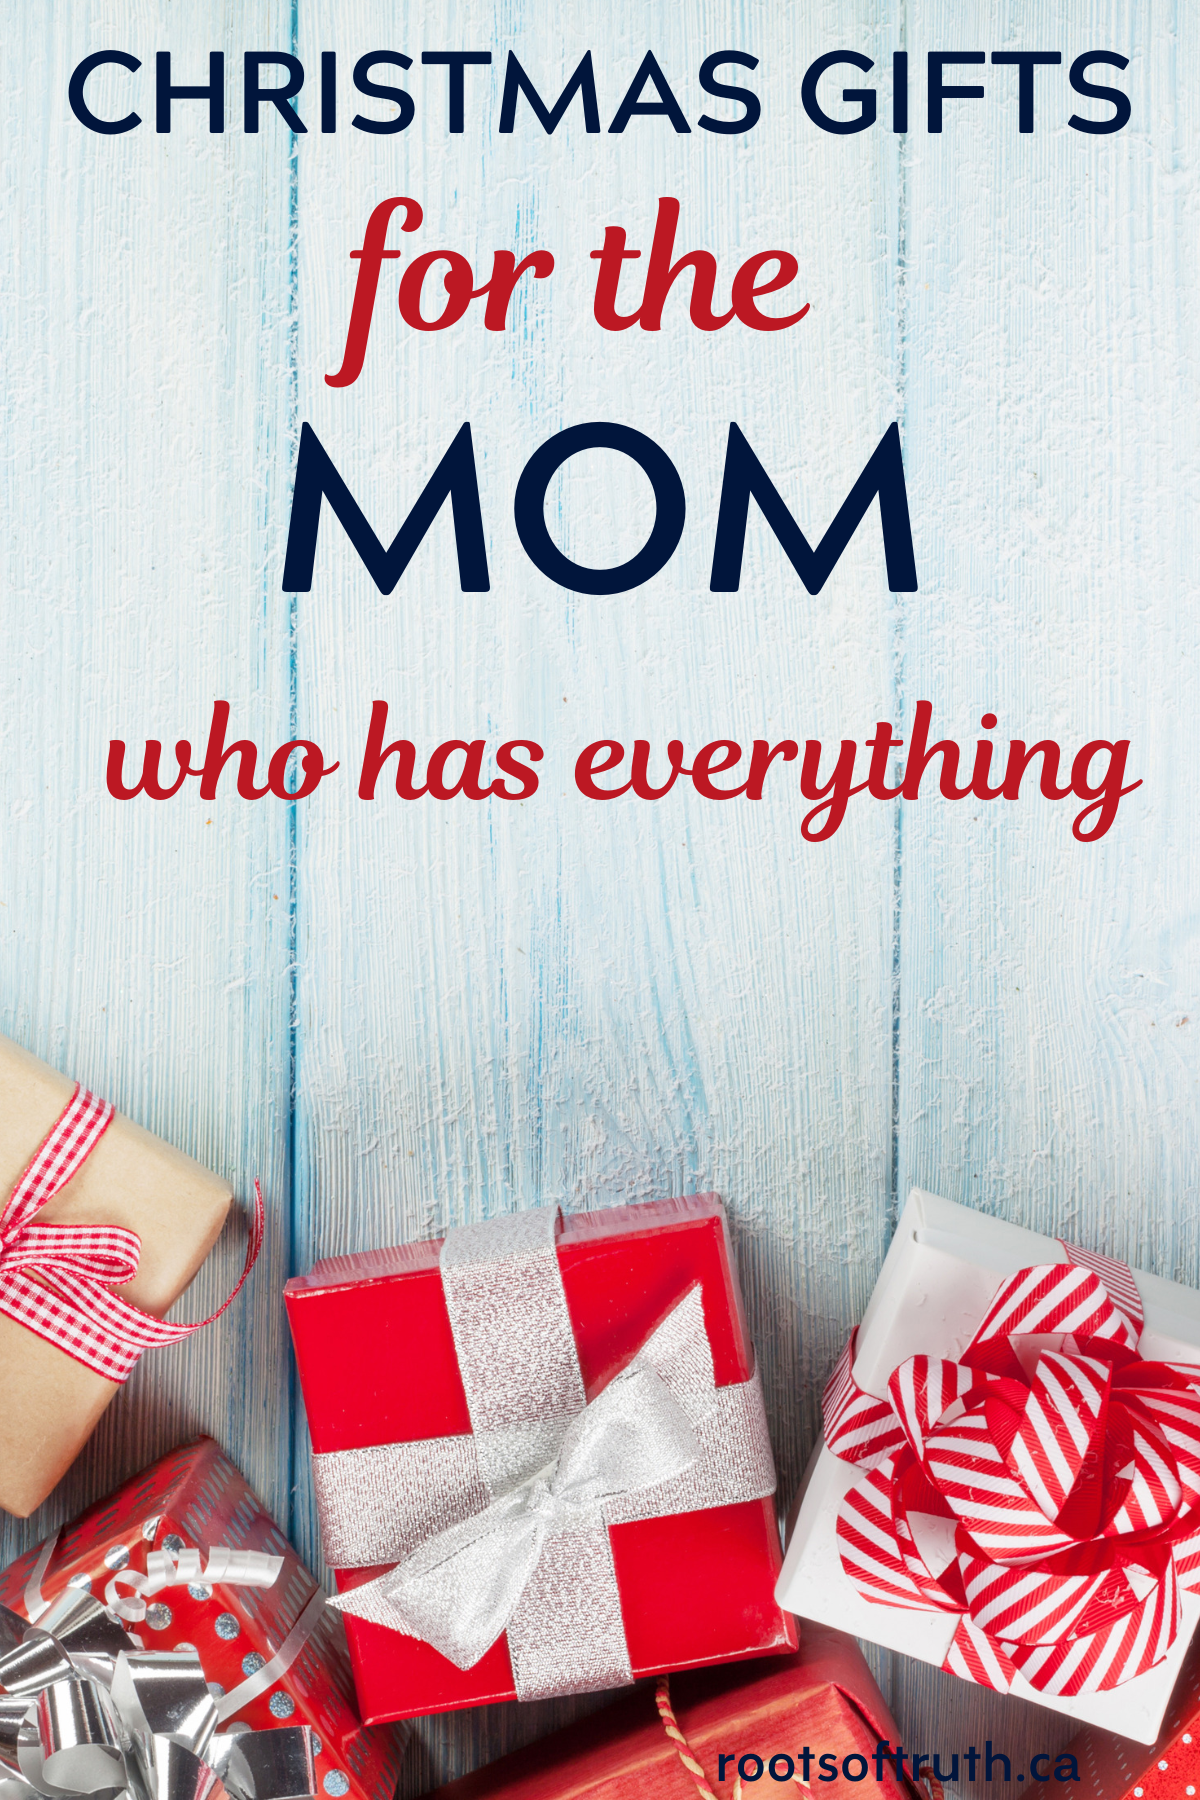 Christmas Gifts 2021 For Mom Gifts For A Mom Who Doesn T Want Anything January 2021 Special Gifts For Mom Christmas Gifts For Mom Christmas Gifts